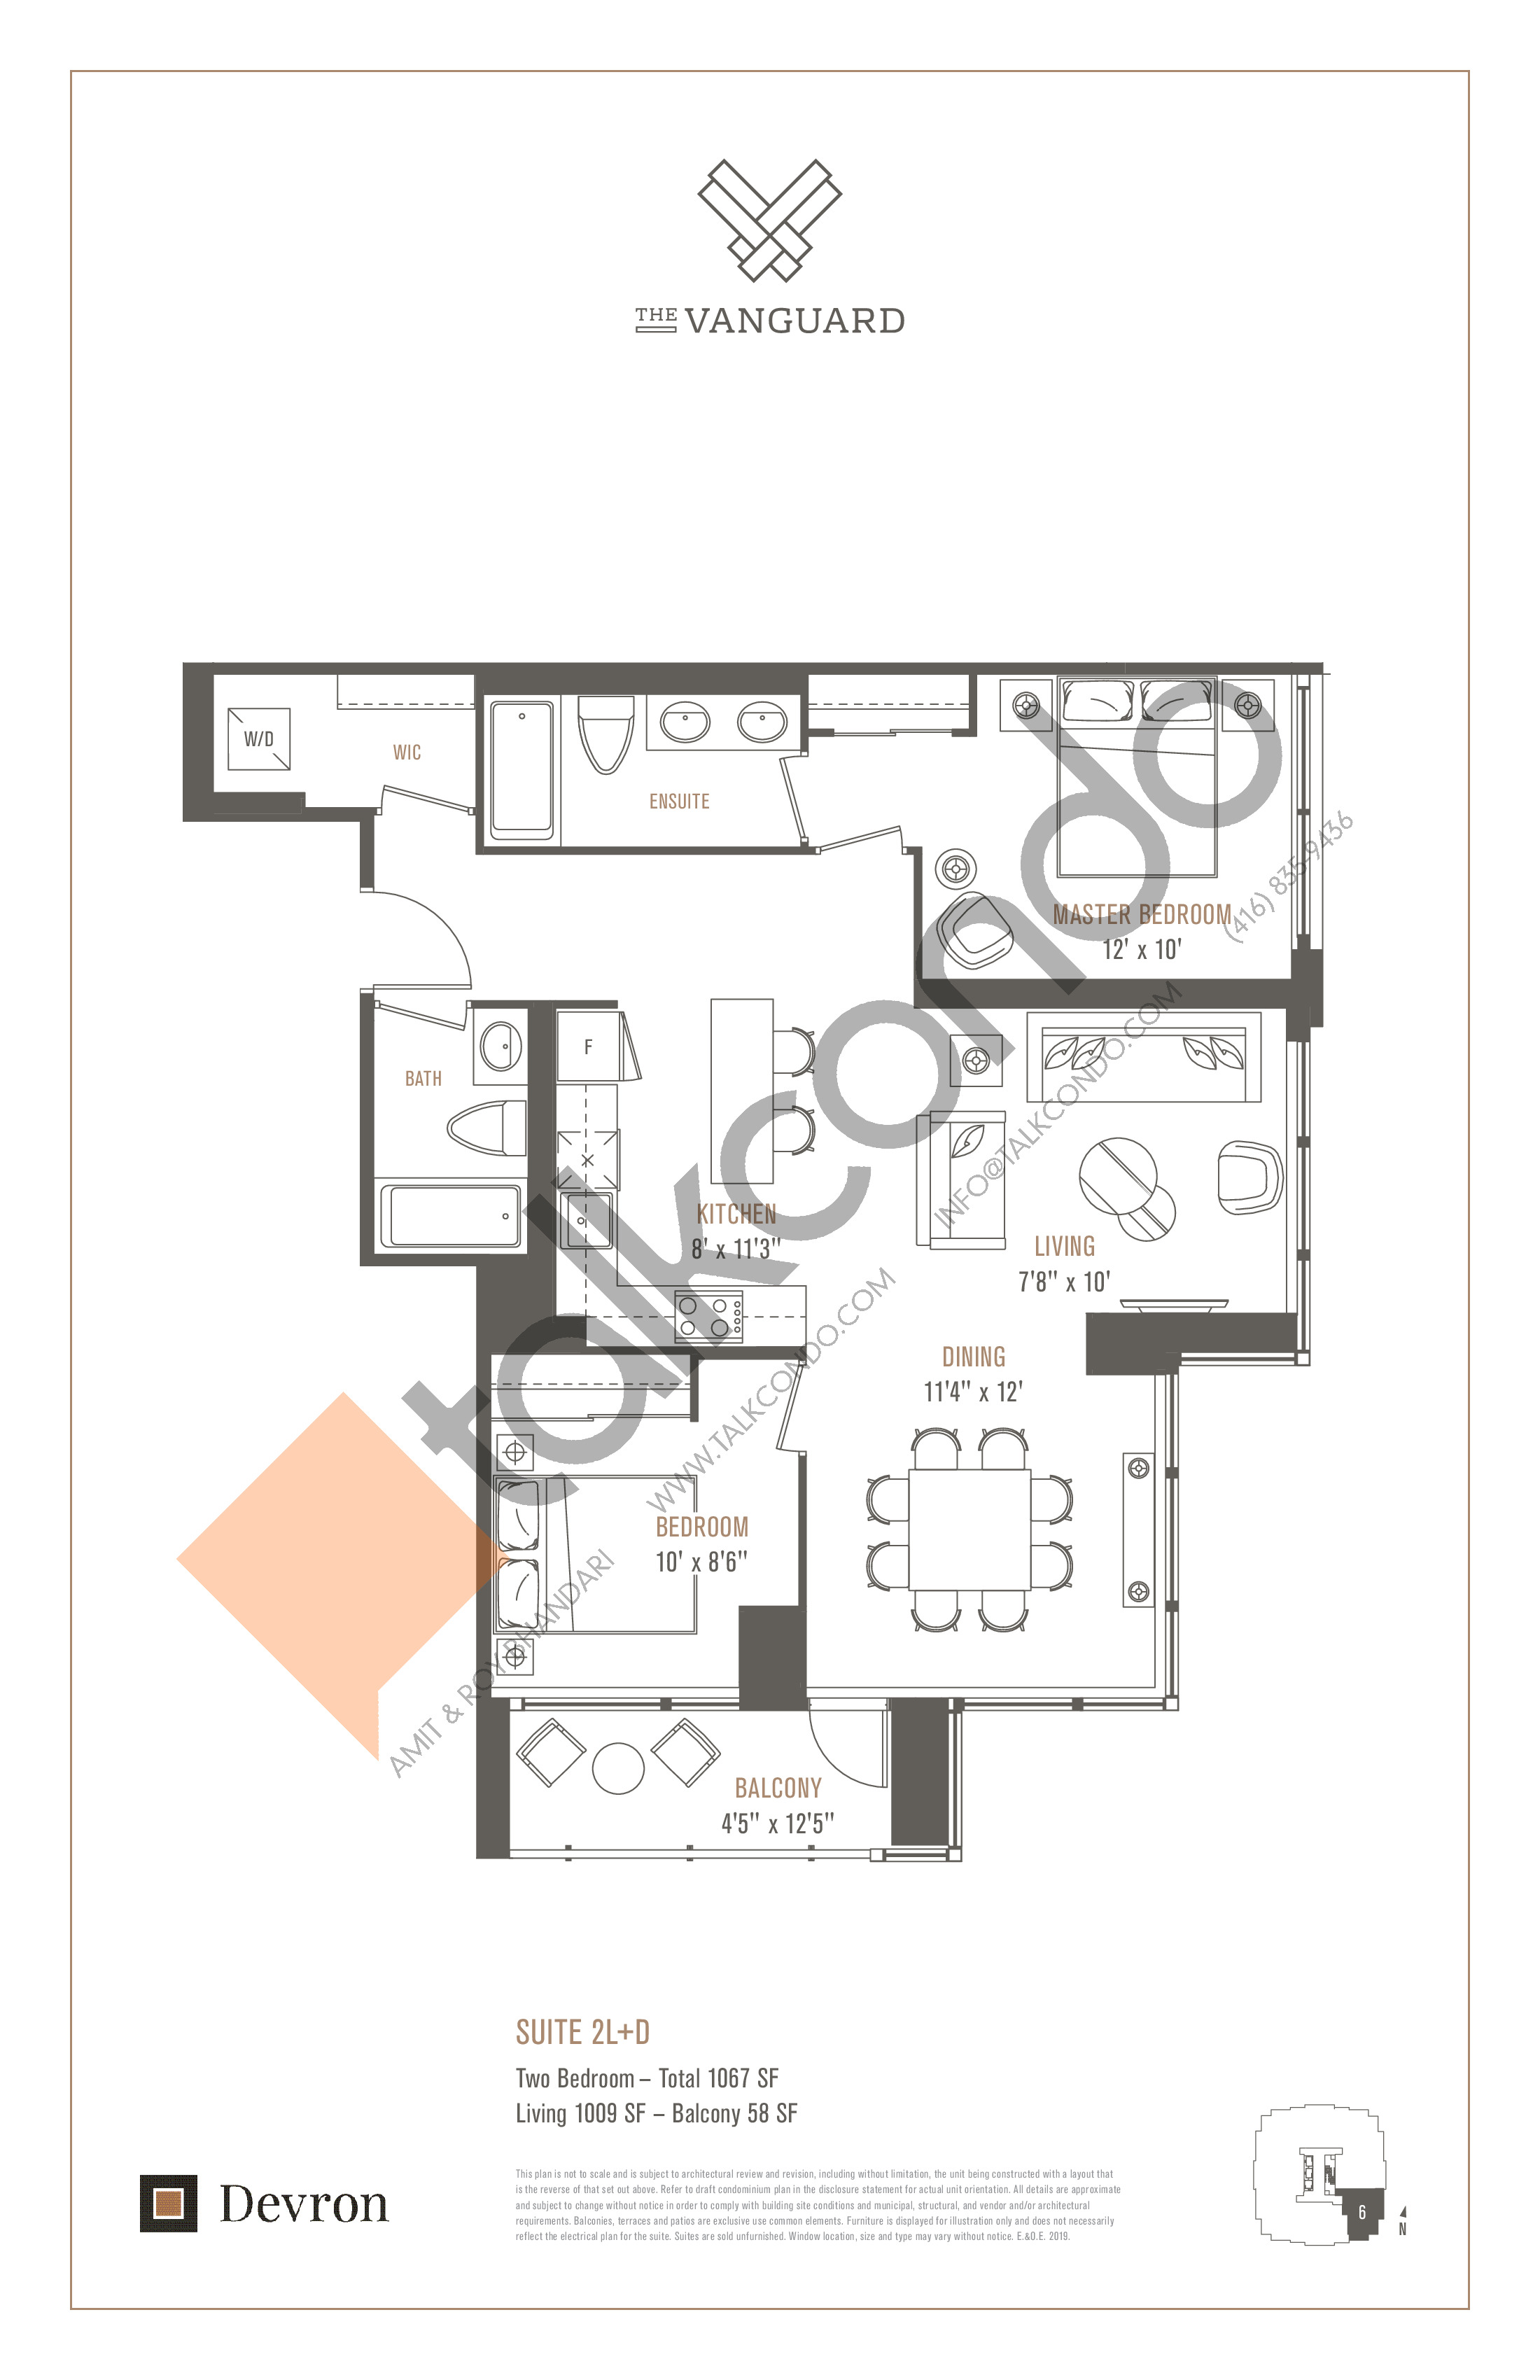 Suite 2L+D Floor Plan at The Vanguard - 1009 sq.ft